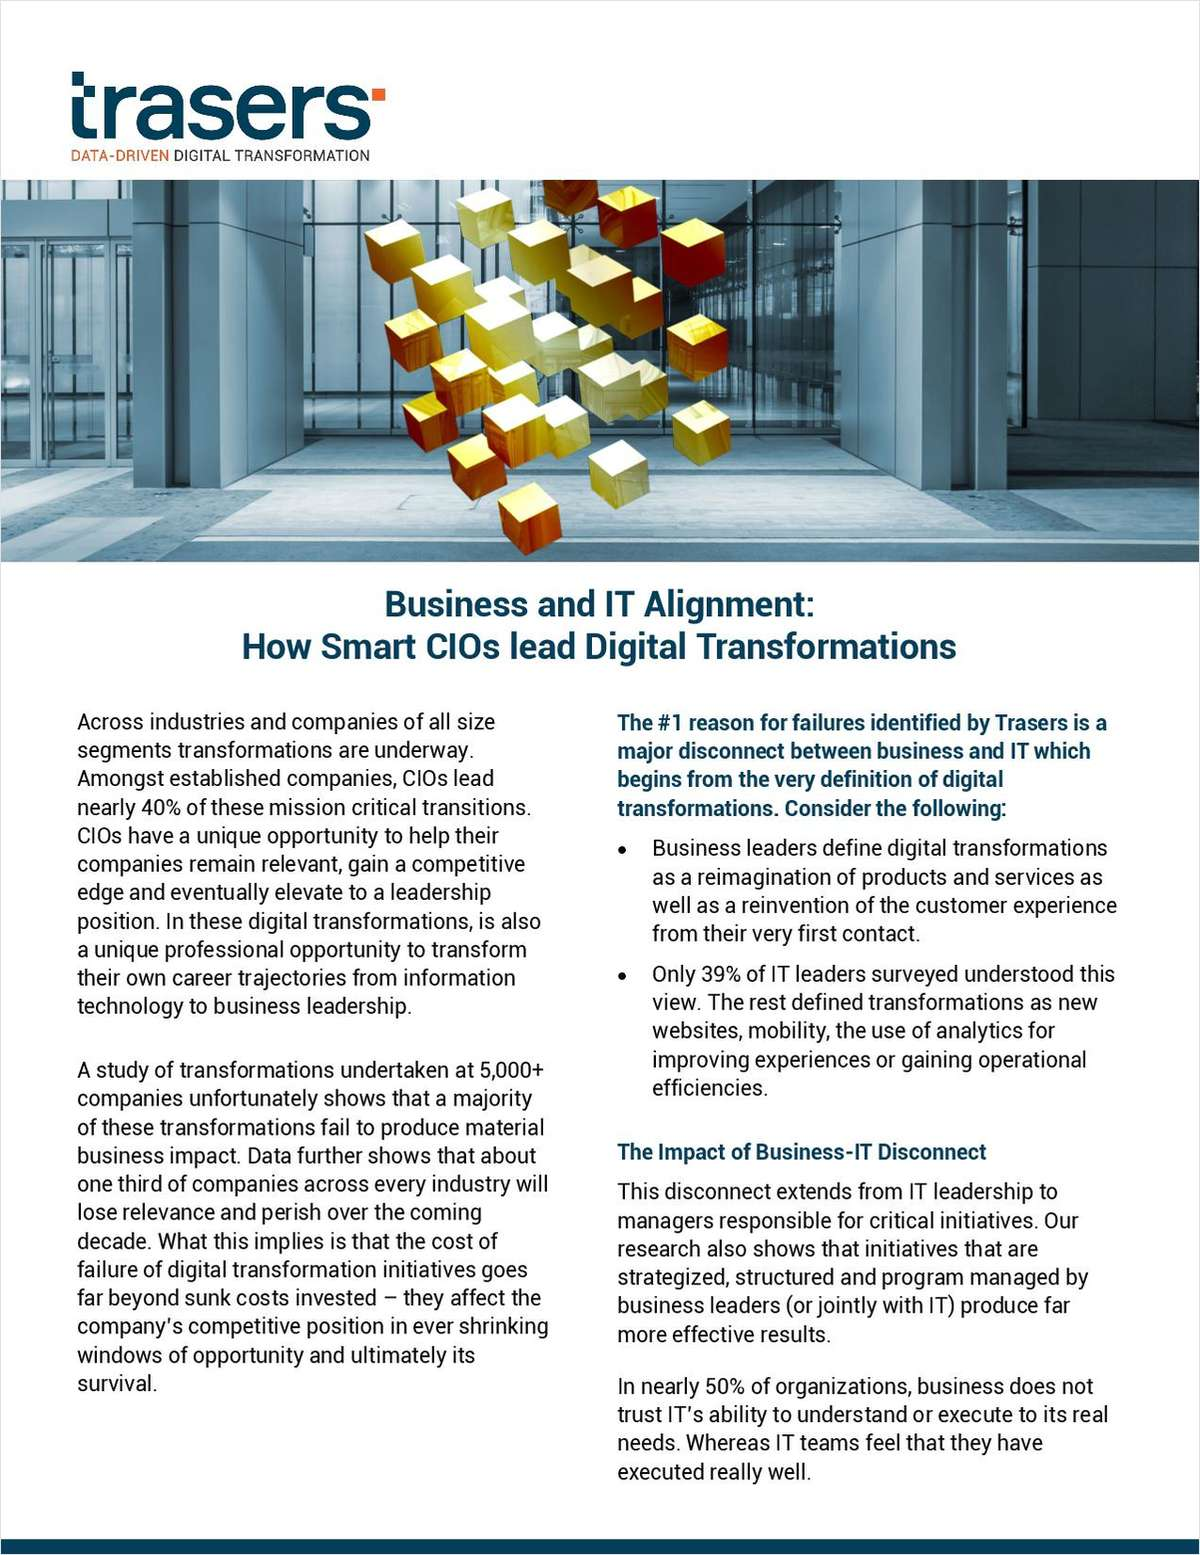 Business and IT Alignment: How Smart CIOs lead Digital Transformations